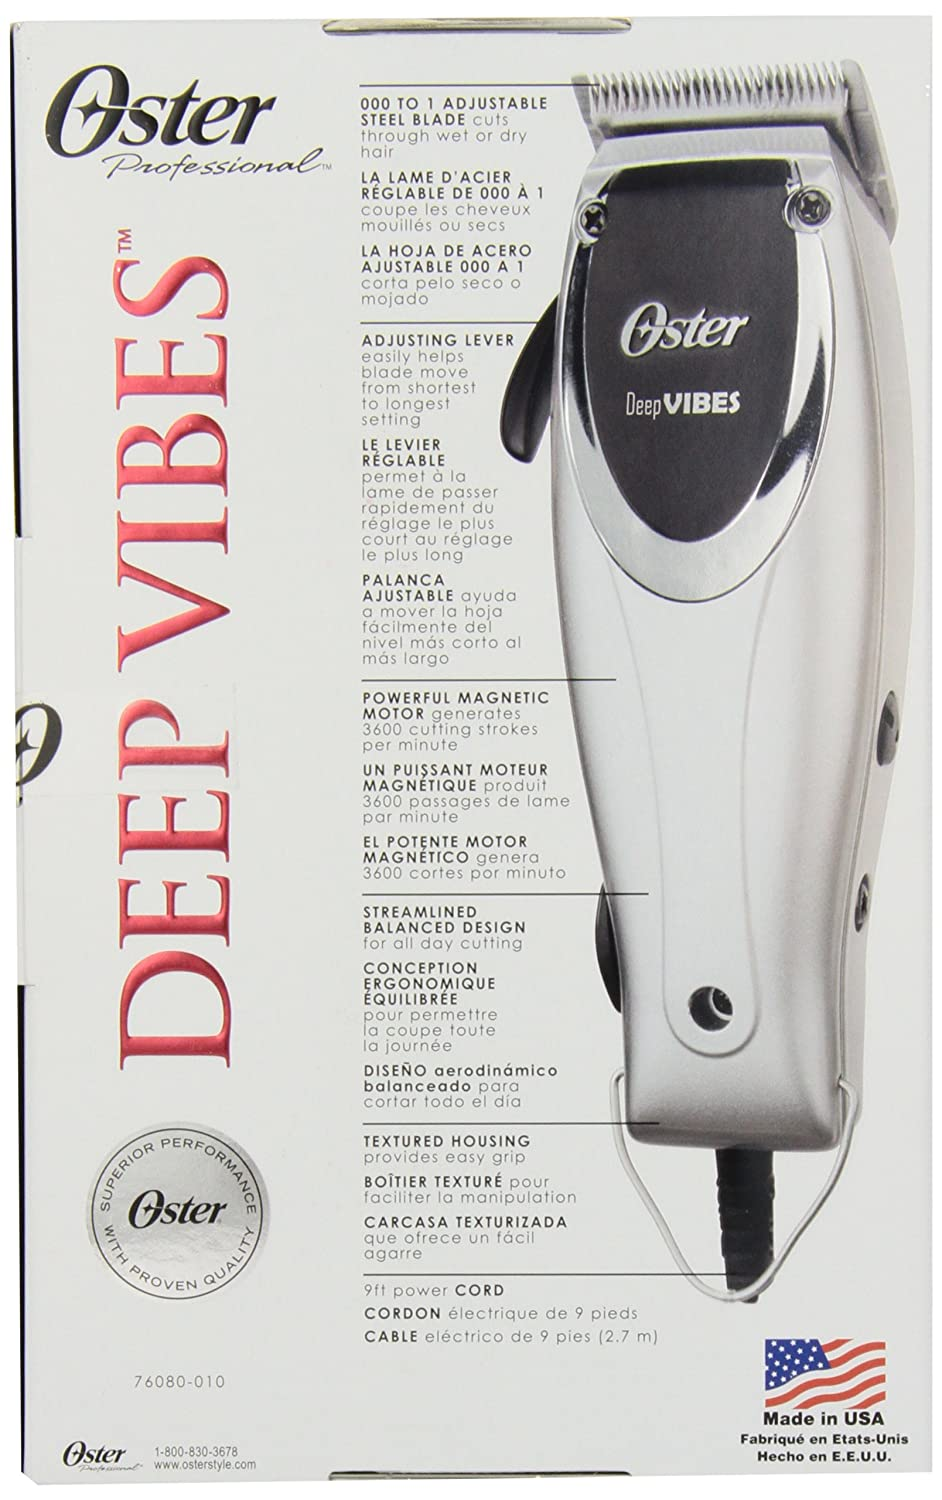 Amazon.com: Oster Professional 76080-10 Deep Vibes Professional Adjustable Vibrating Clipper: Beauty